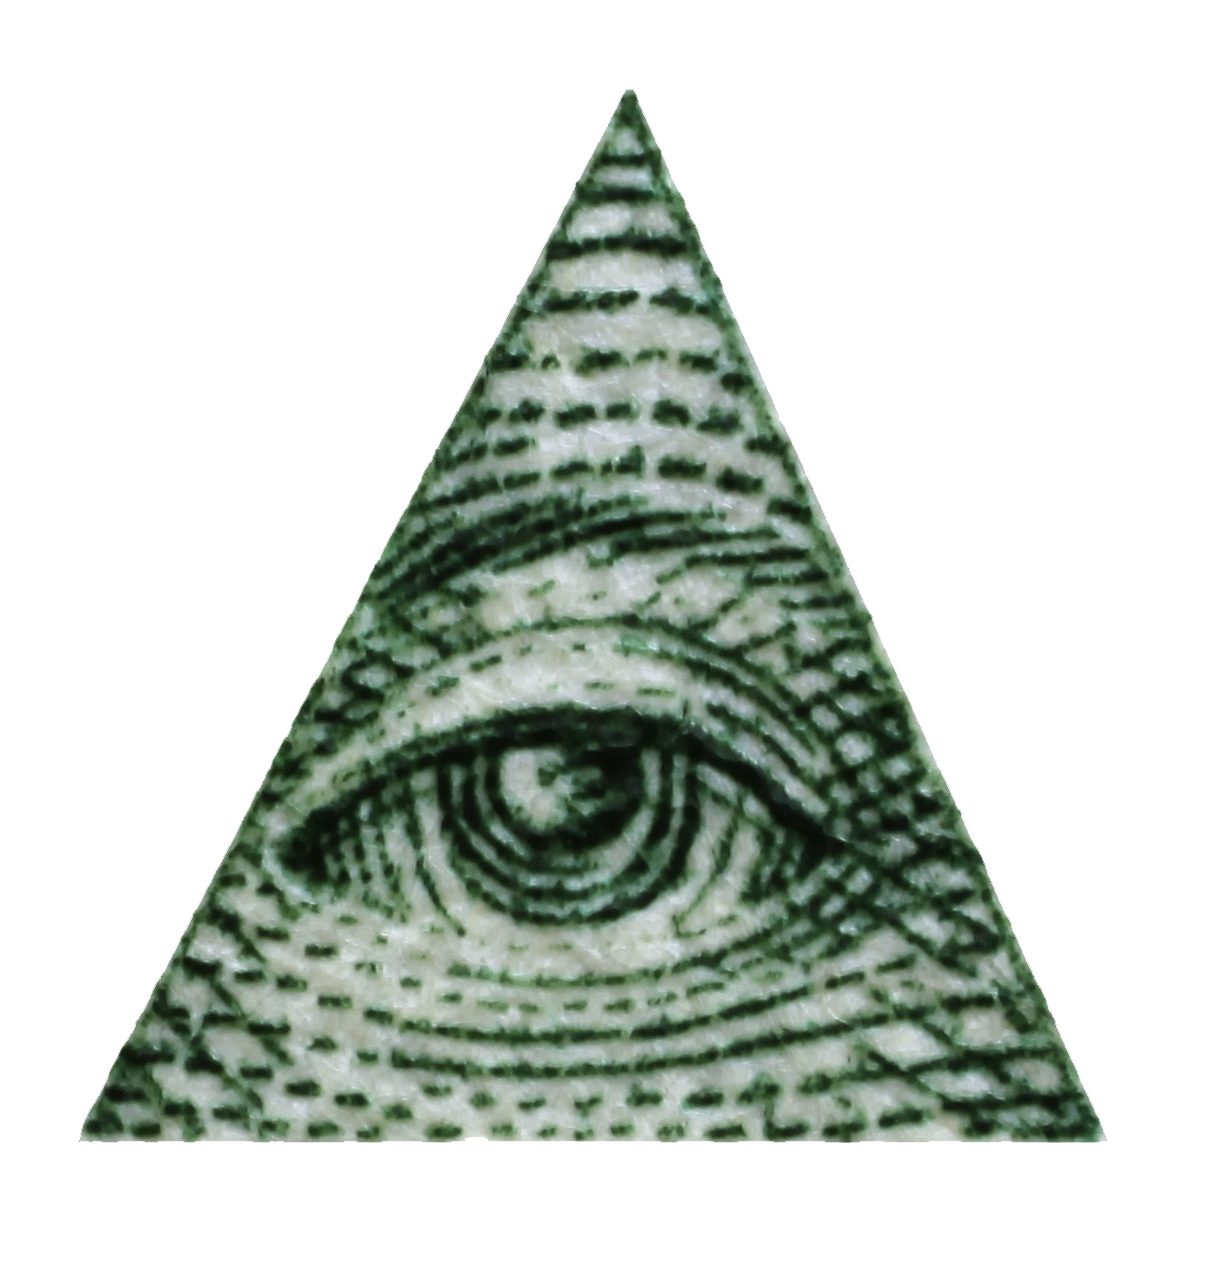 illuminati eye png